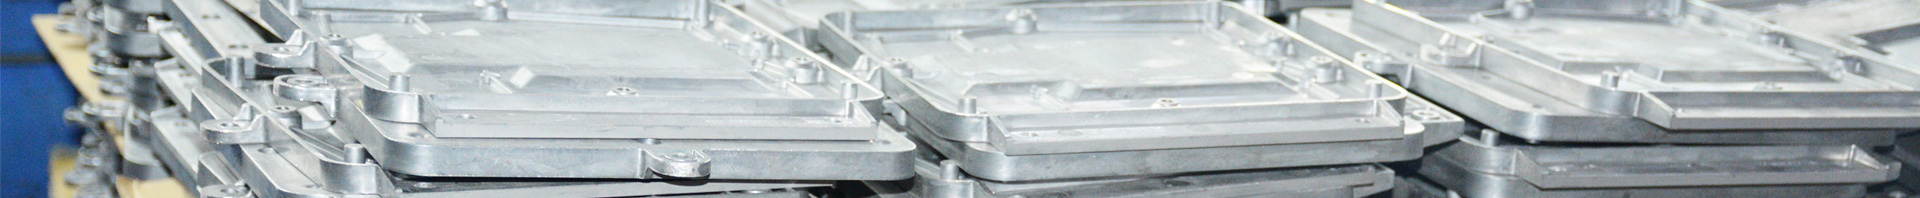 KA HENG Mould Manufacturer